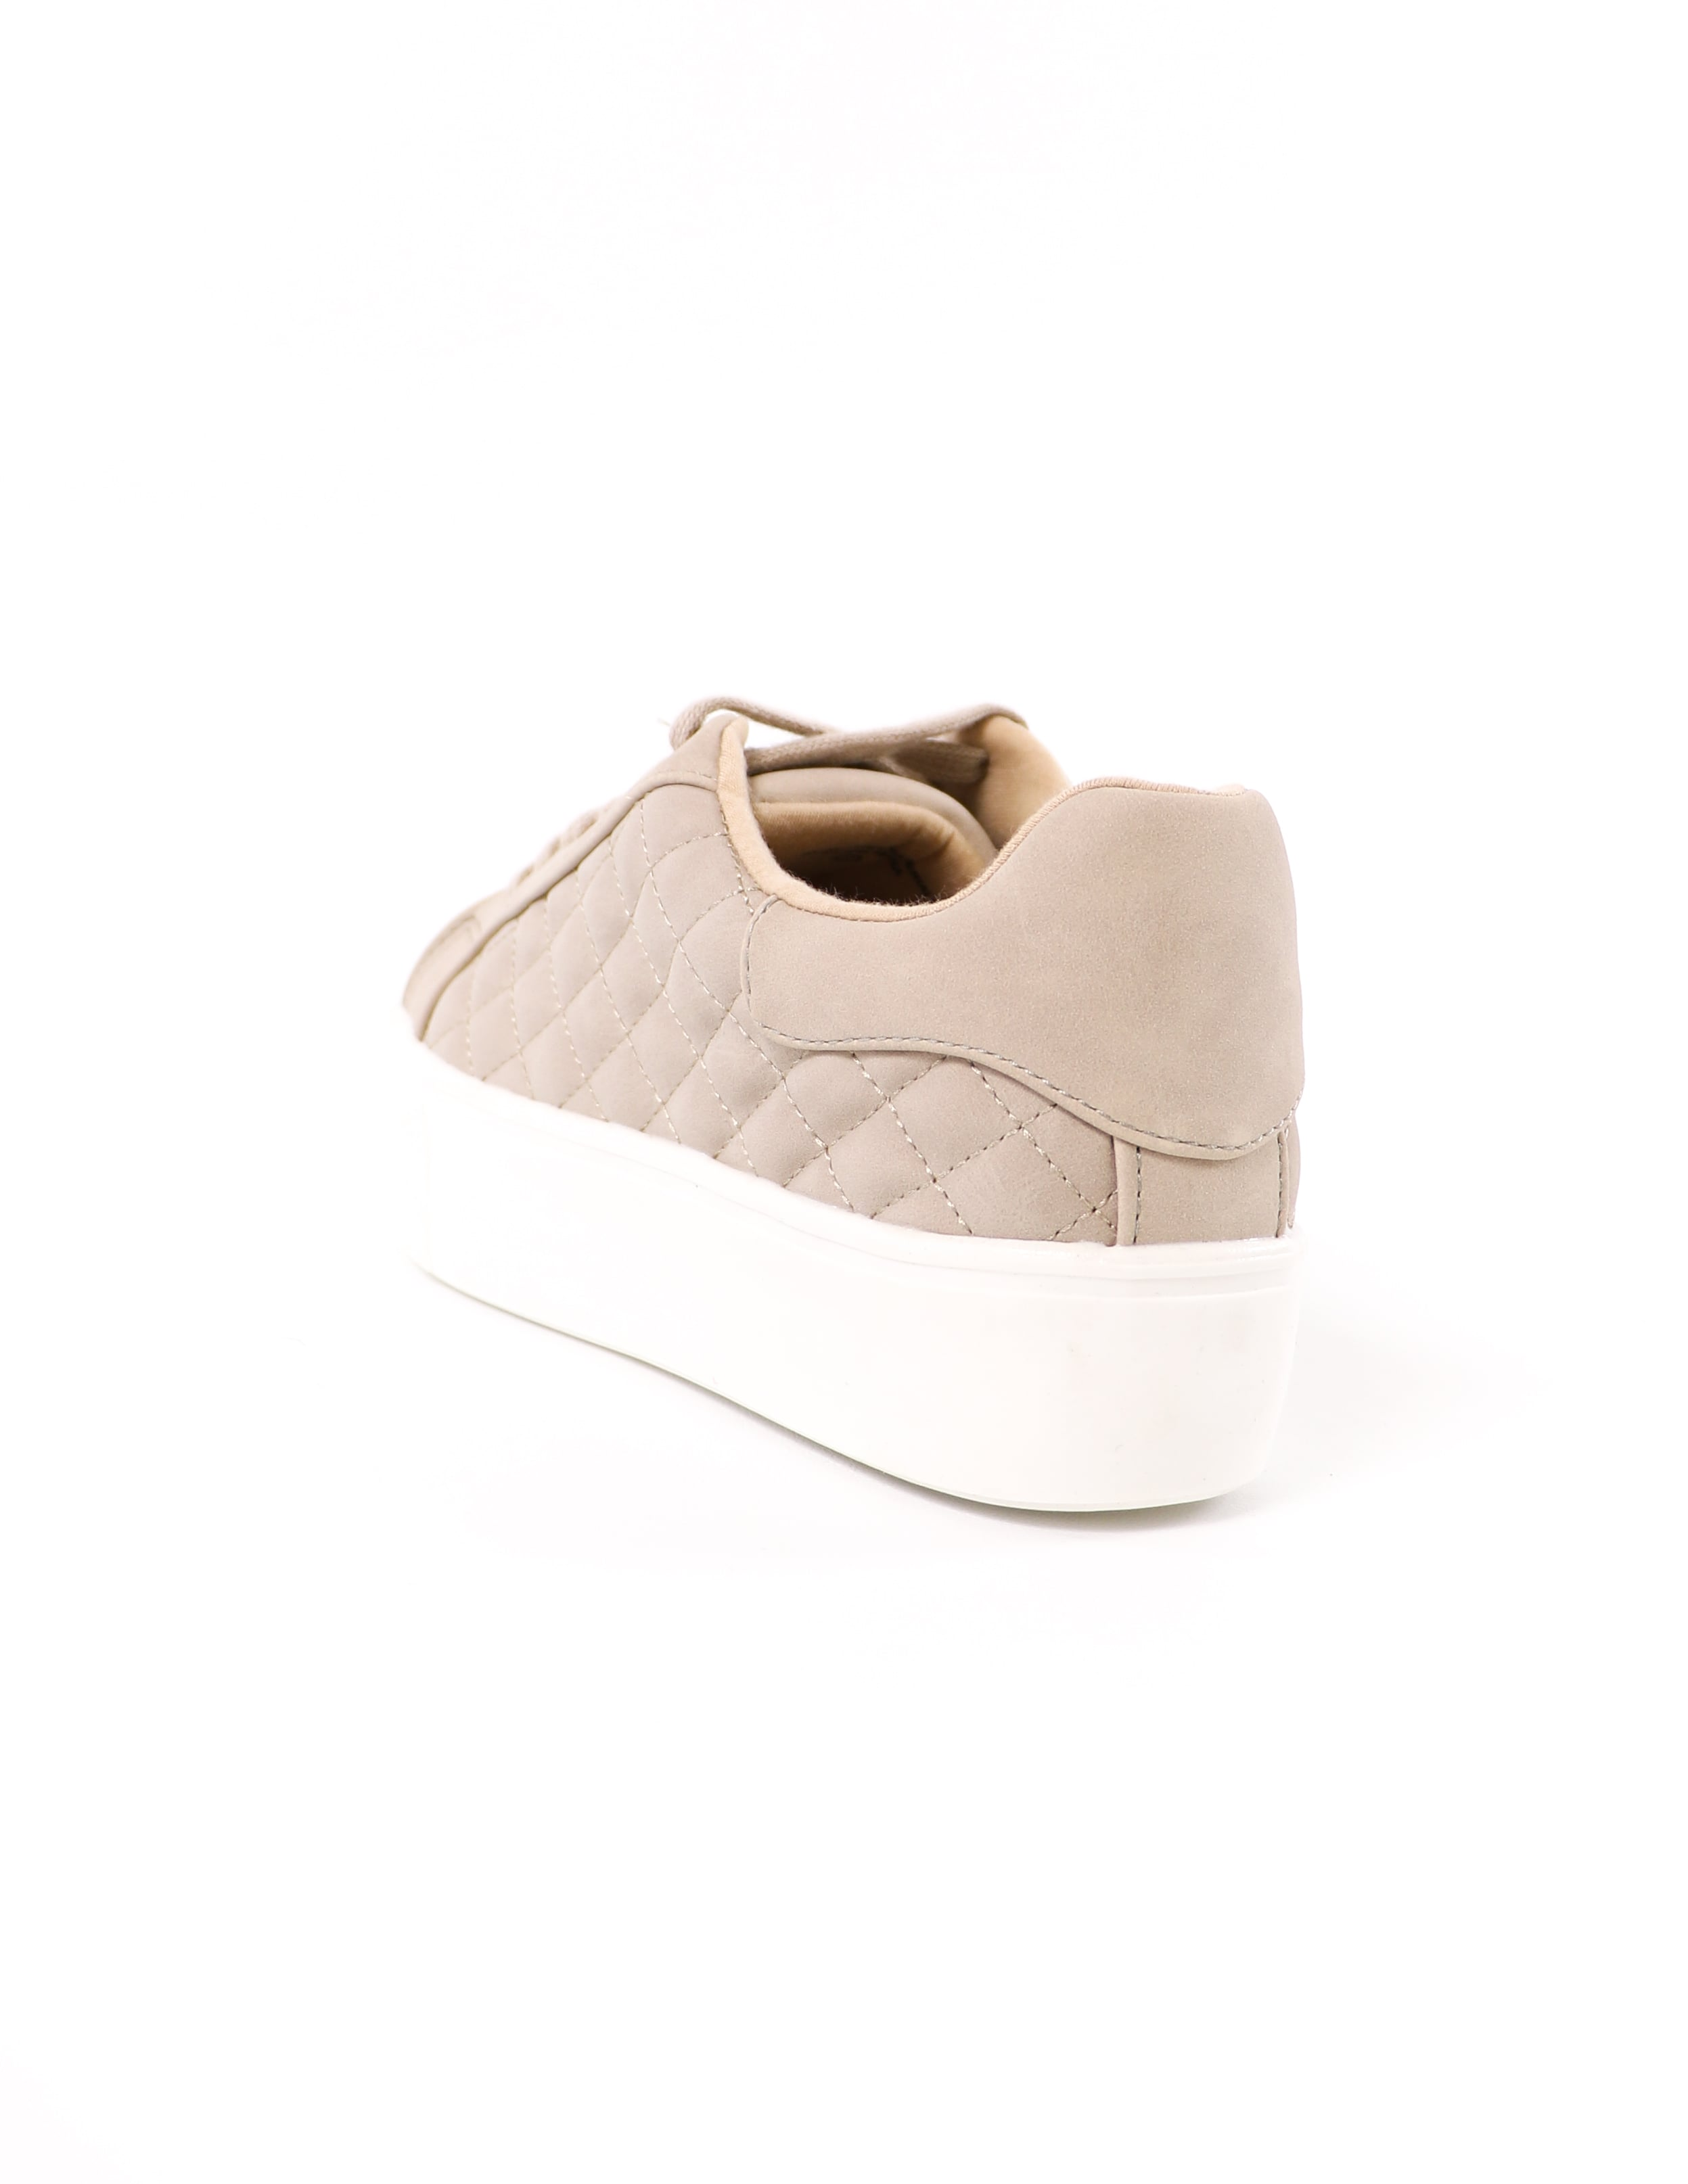 back of the quilted sand quilt messin' around platform sneaker - elle bleu shoes